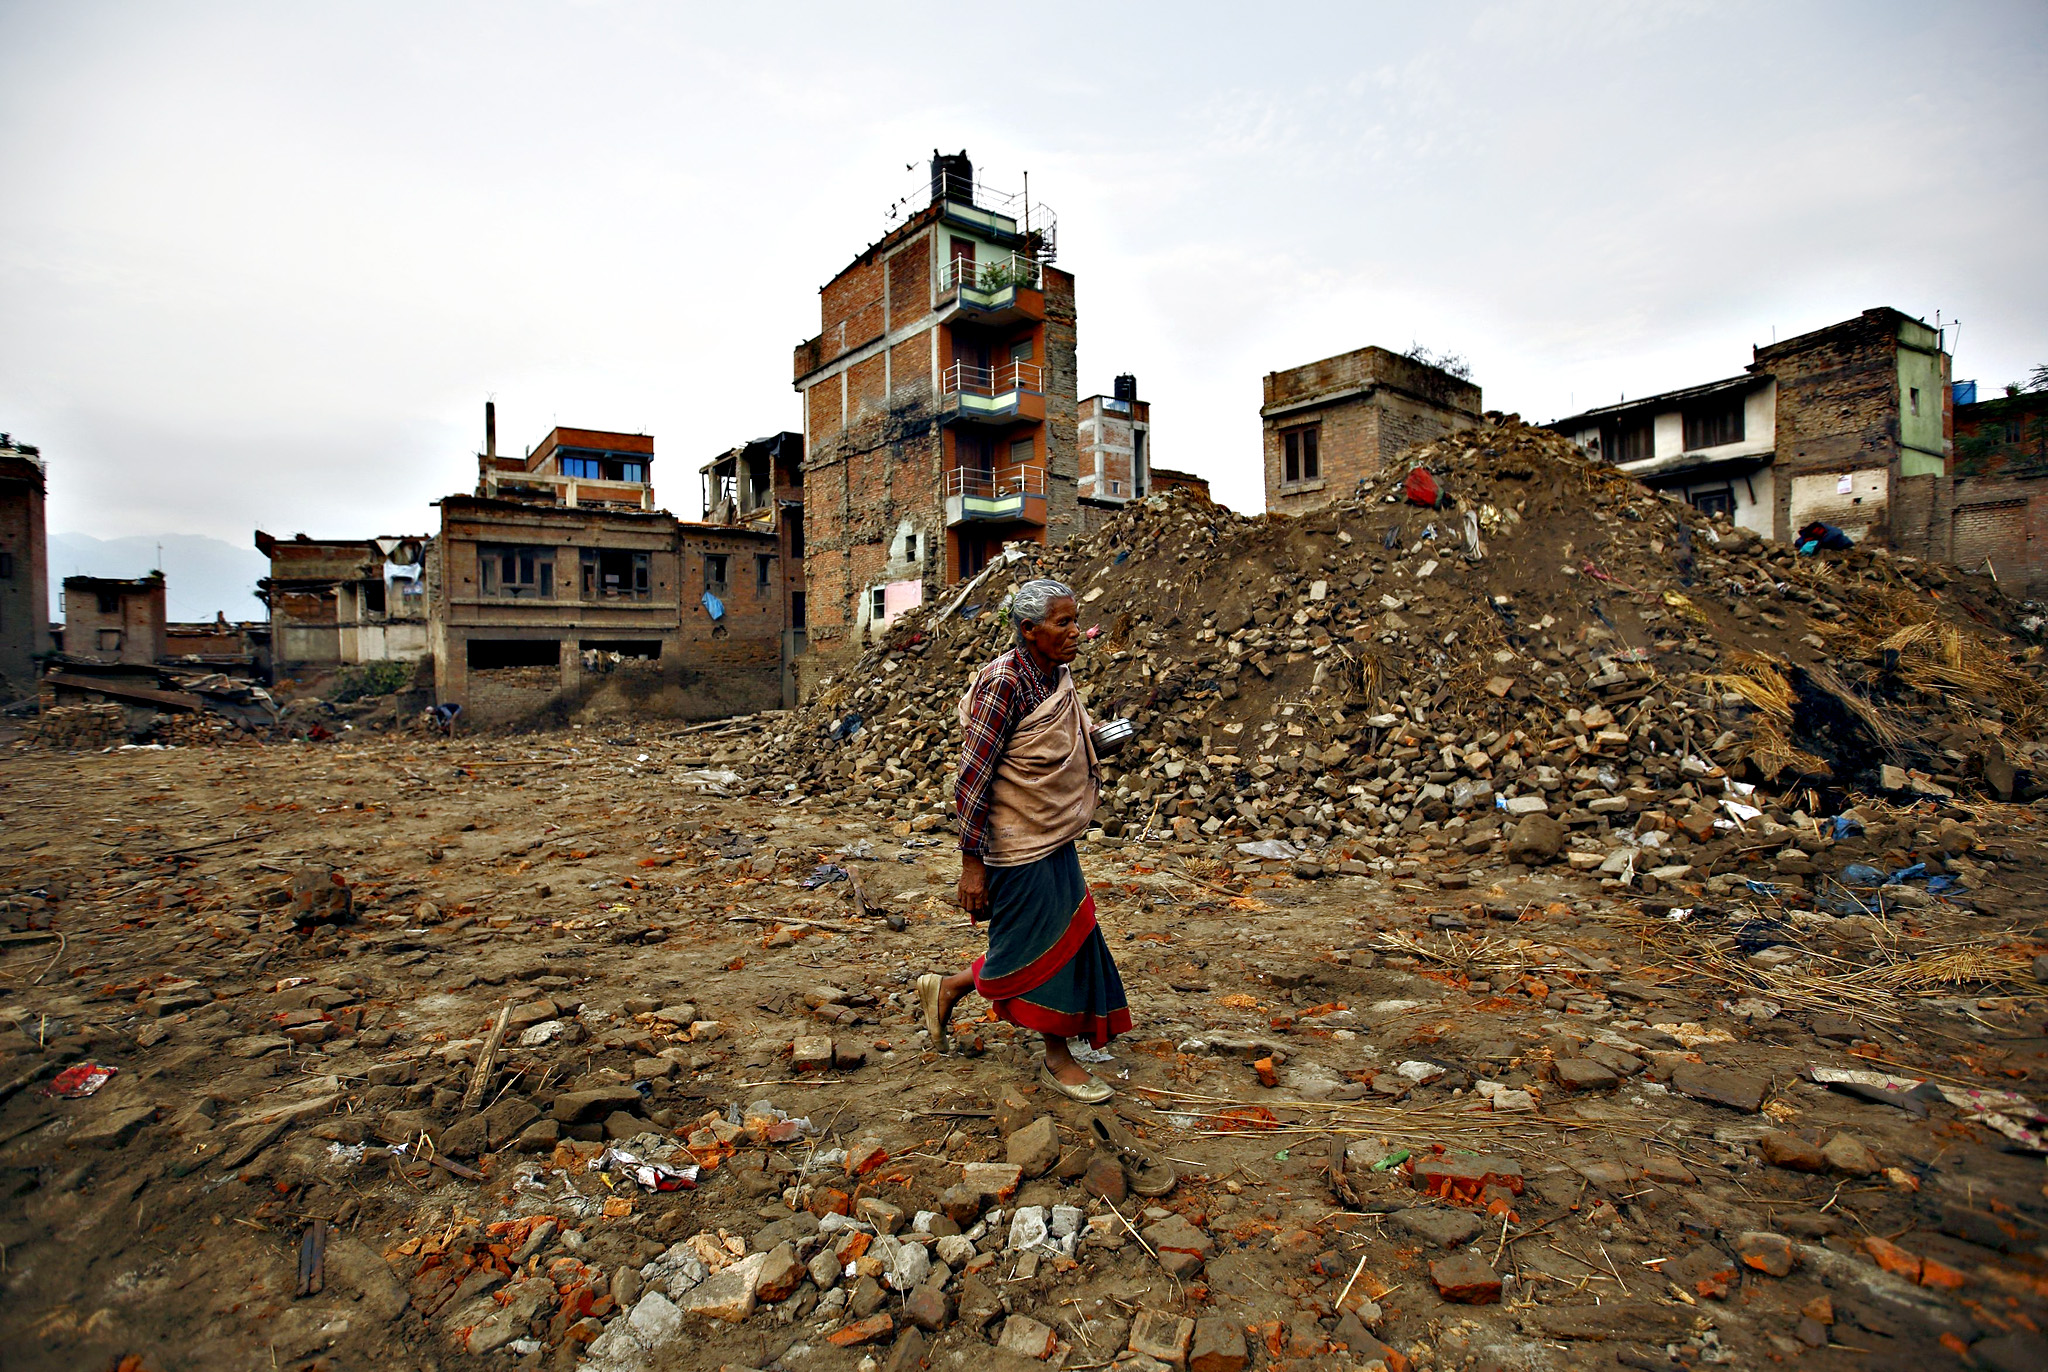 A woman walks past collapsed houses that were damaged during the earthquake in Bhaktapur July 14, 2015. Two months after massive twin earthquakes killed 8,897 people in Nepal, nearly three million survivors, many in mountainous, hard-to-reach areas, still needed shelter, food and basic medical care as the yearly monsoon bore down on the Himalayan nation, the U.N. said in a report released last week